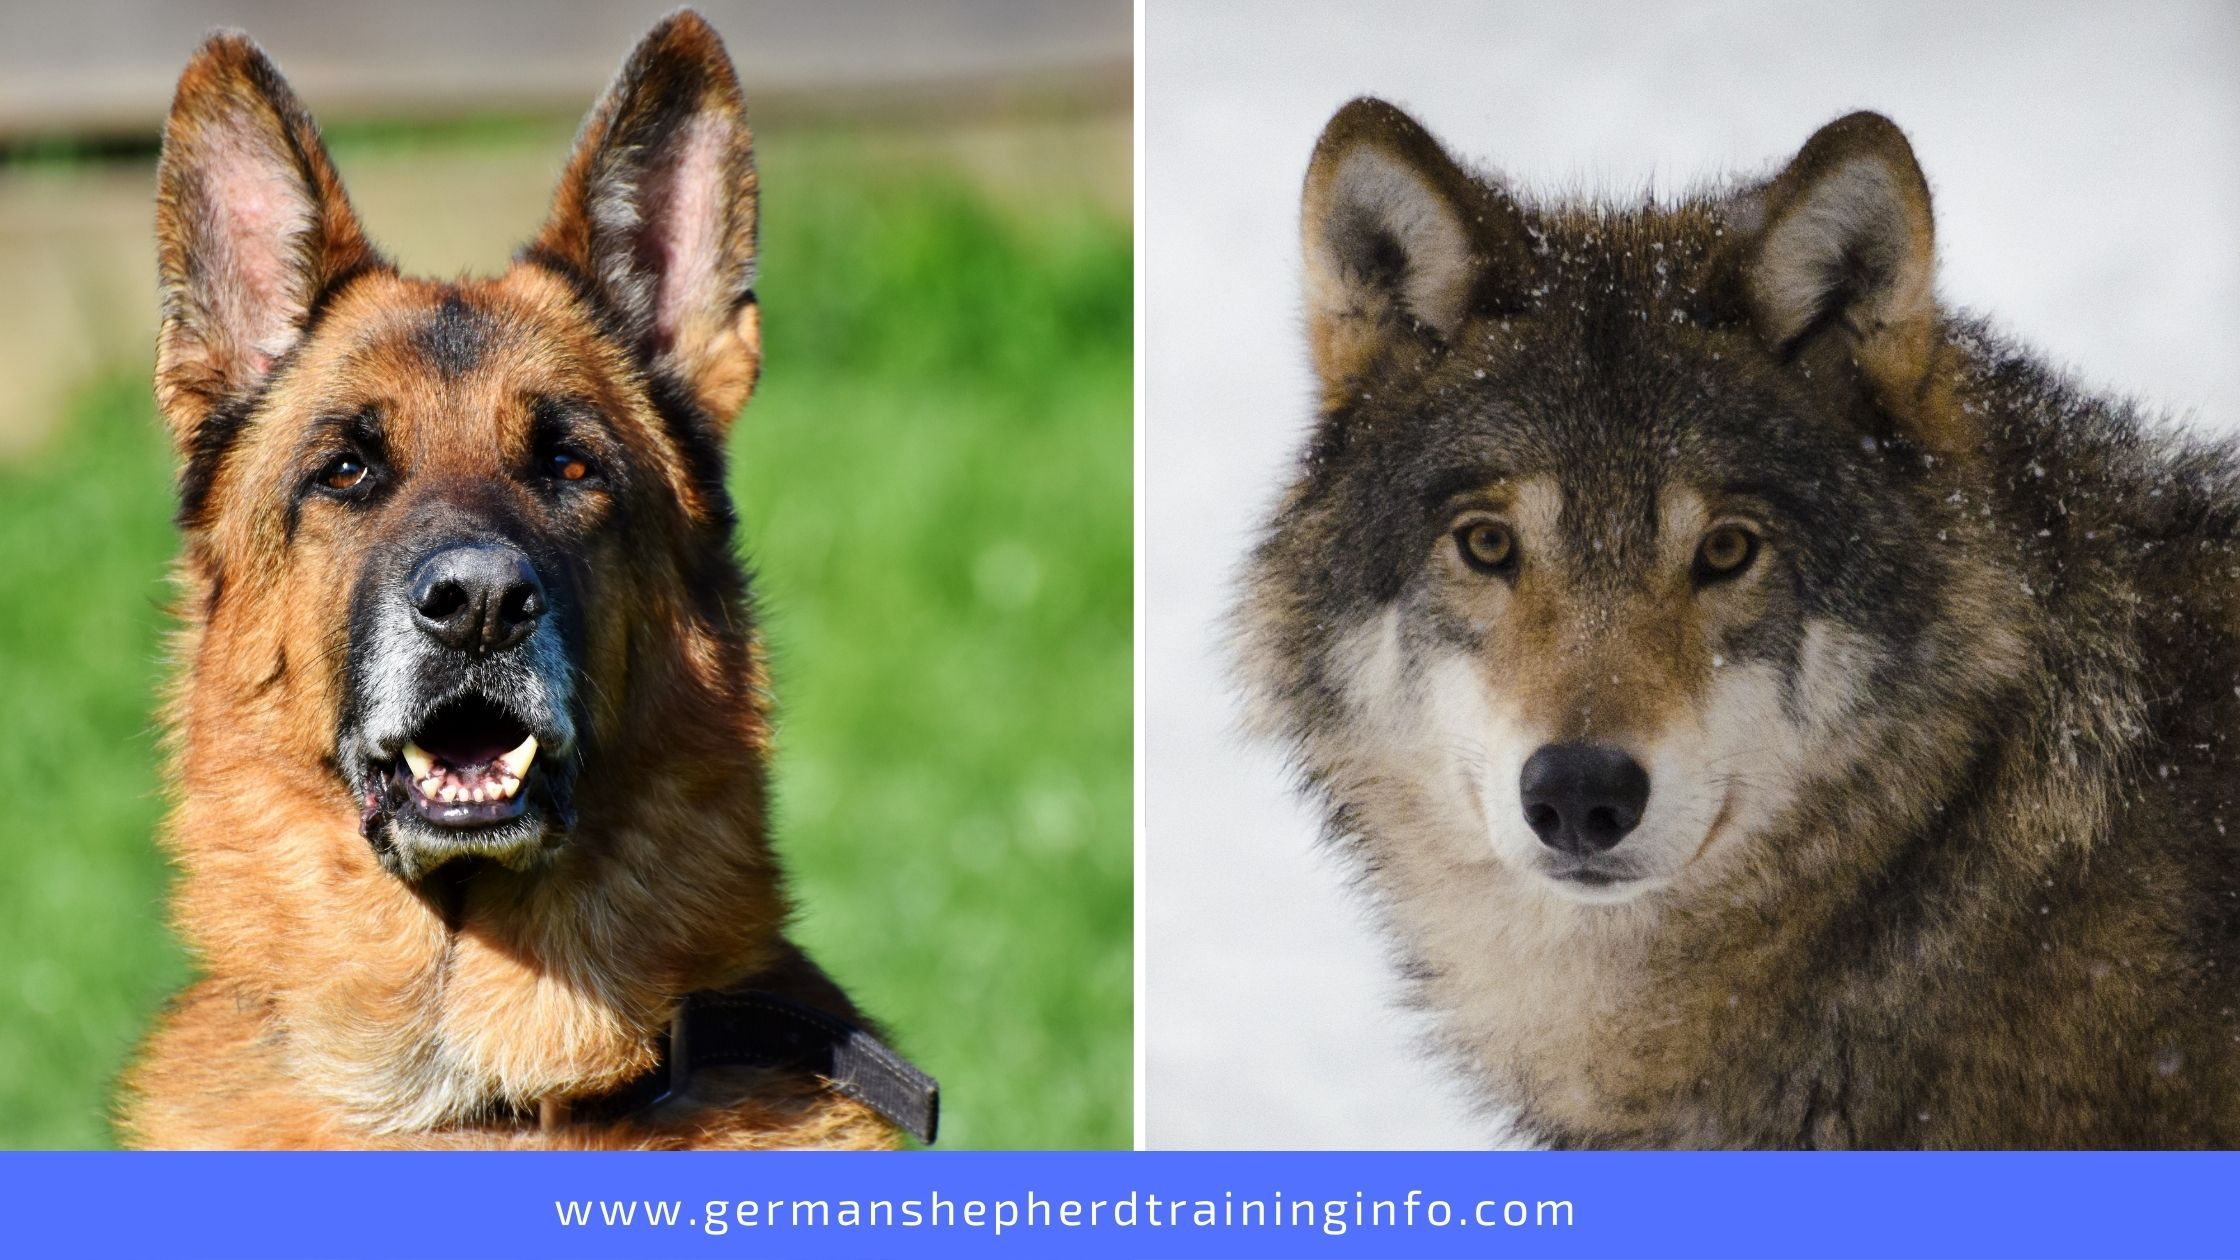 German Shepherd vs Wolf: The differences between the dog in domesticity and the wolf in the wilderness